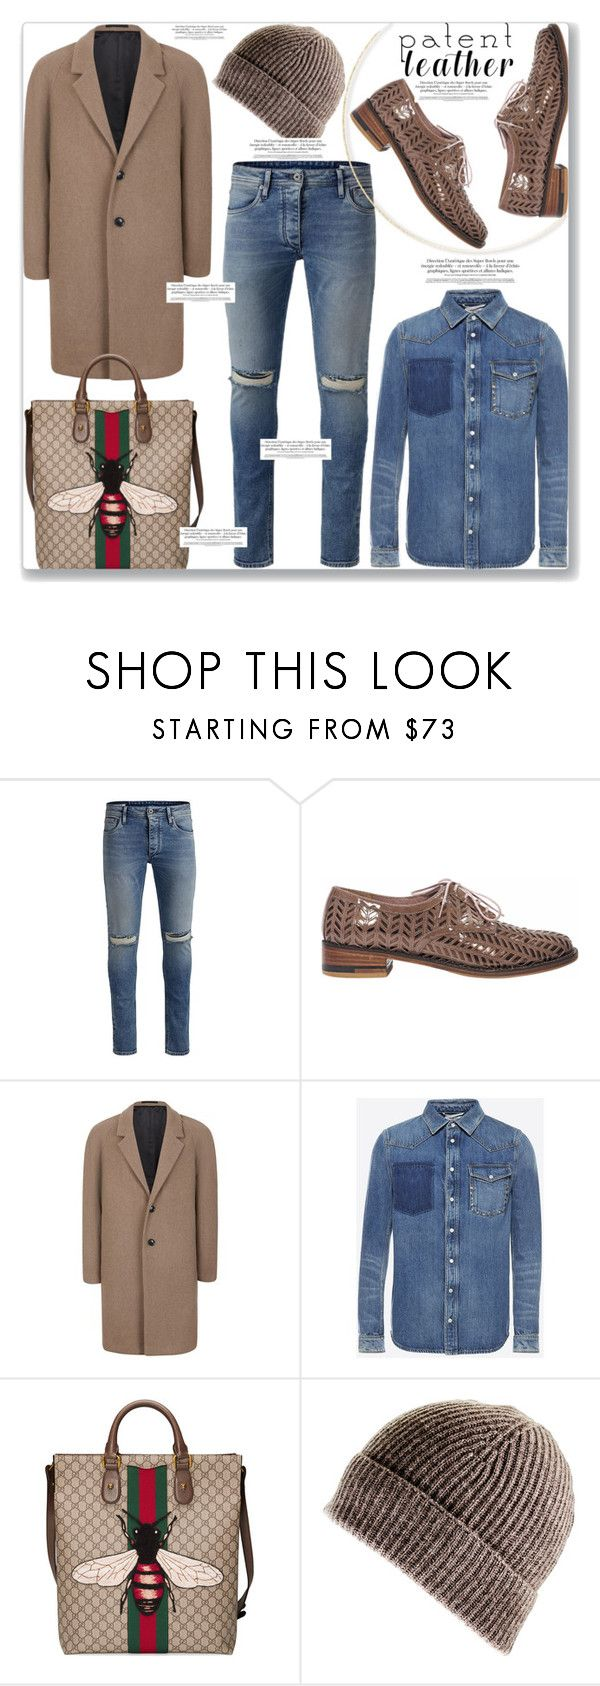 """""""Shoes, Bag and all"""" by mood-chic ❤ liked on Polyvore featuring Jack & Jones, Robert Clergerie, Topman, Valentino, Gucci, Black, men's fashion, menswear and patentleather"""